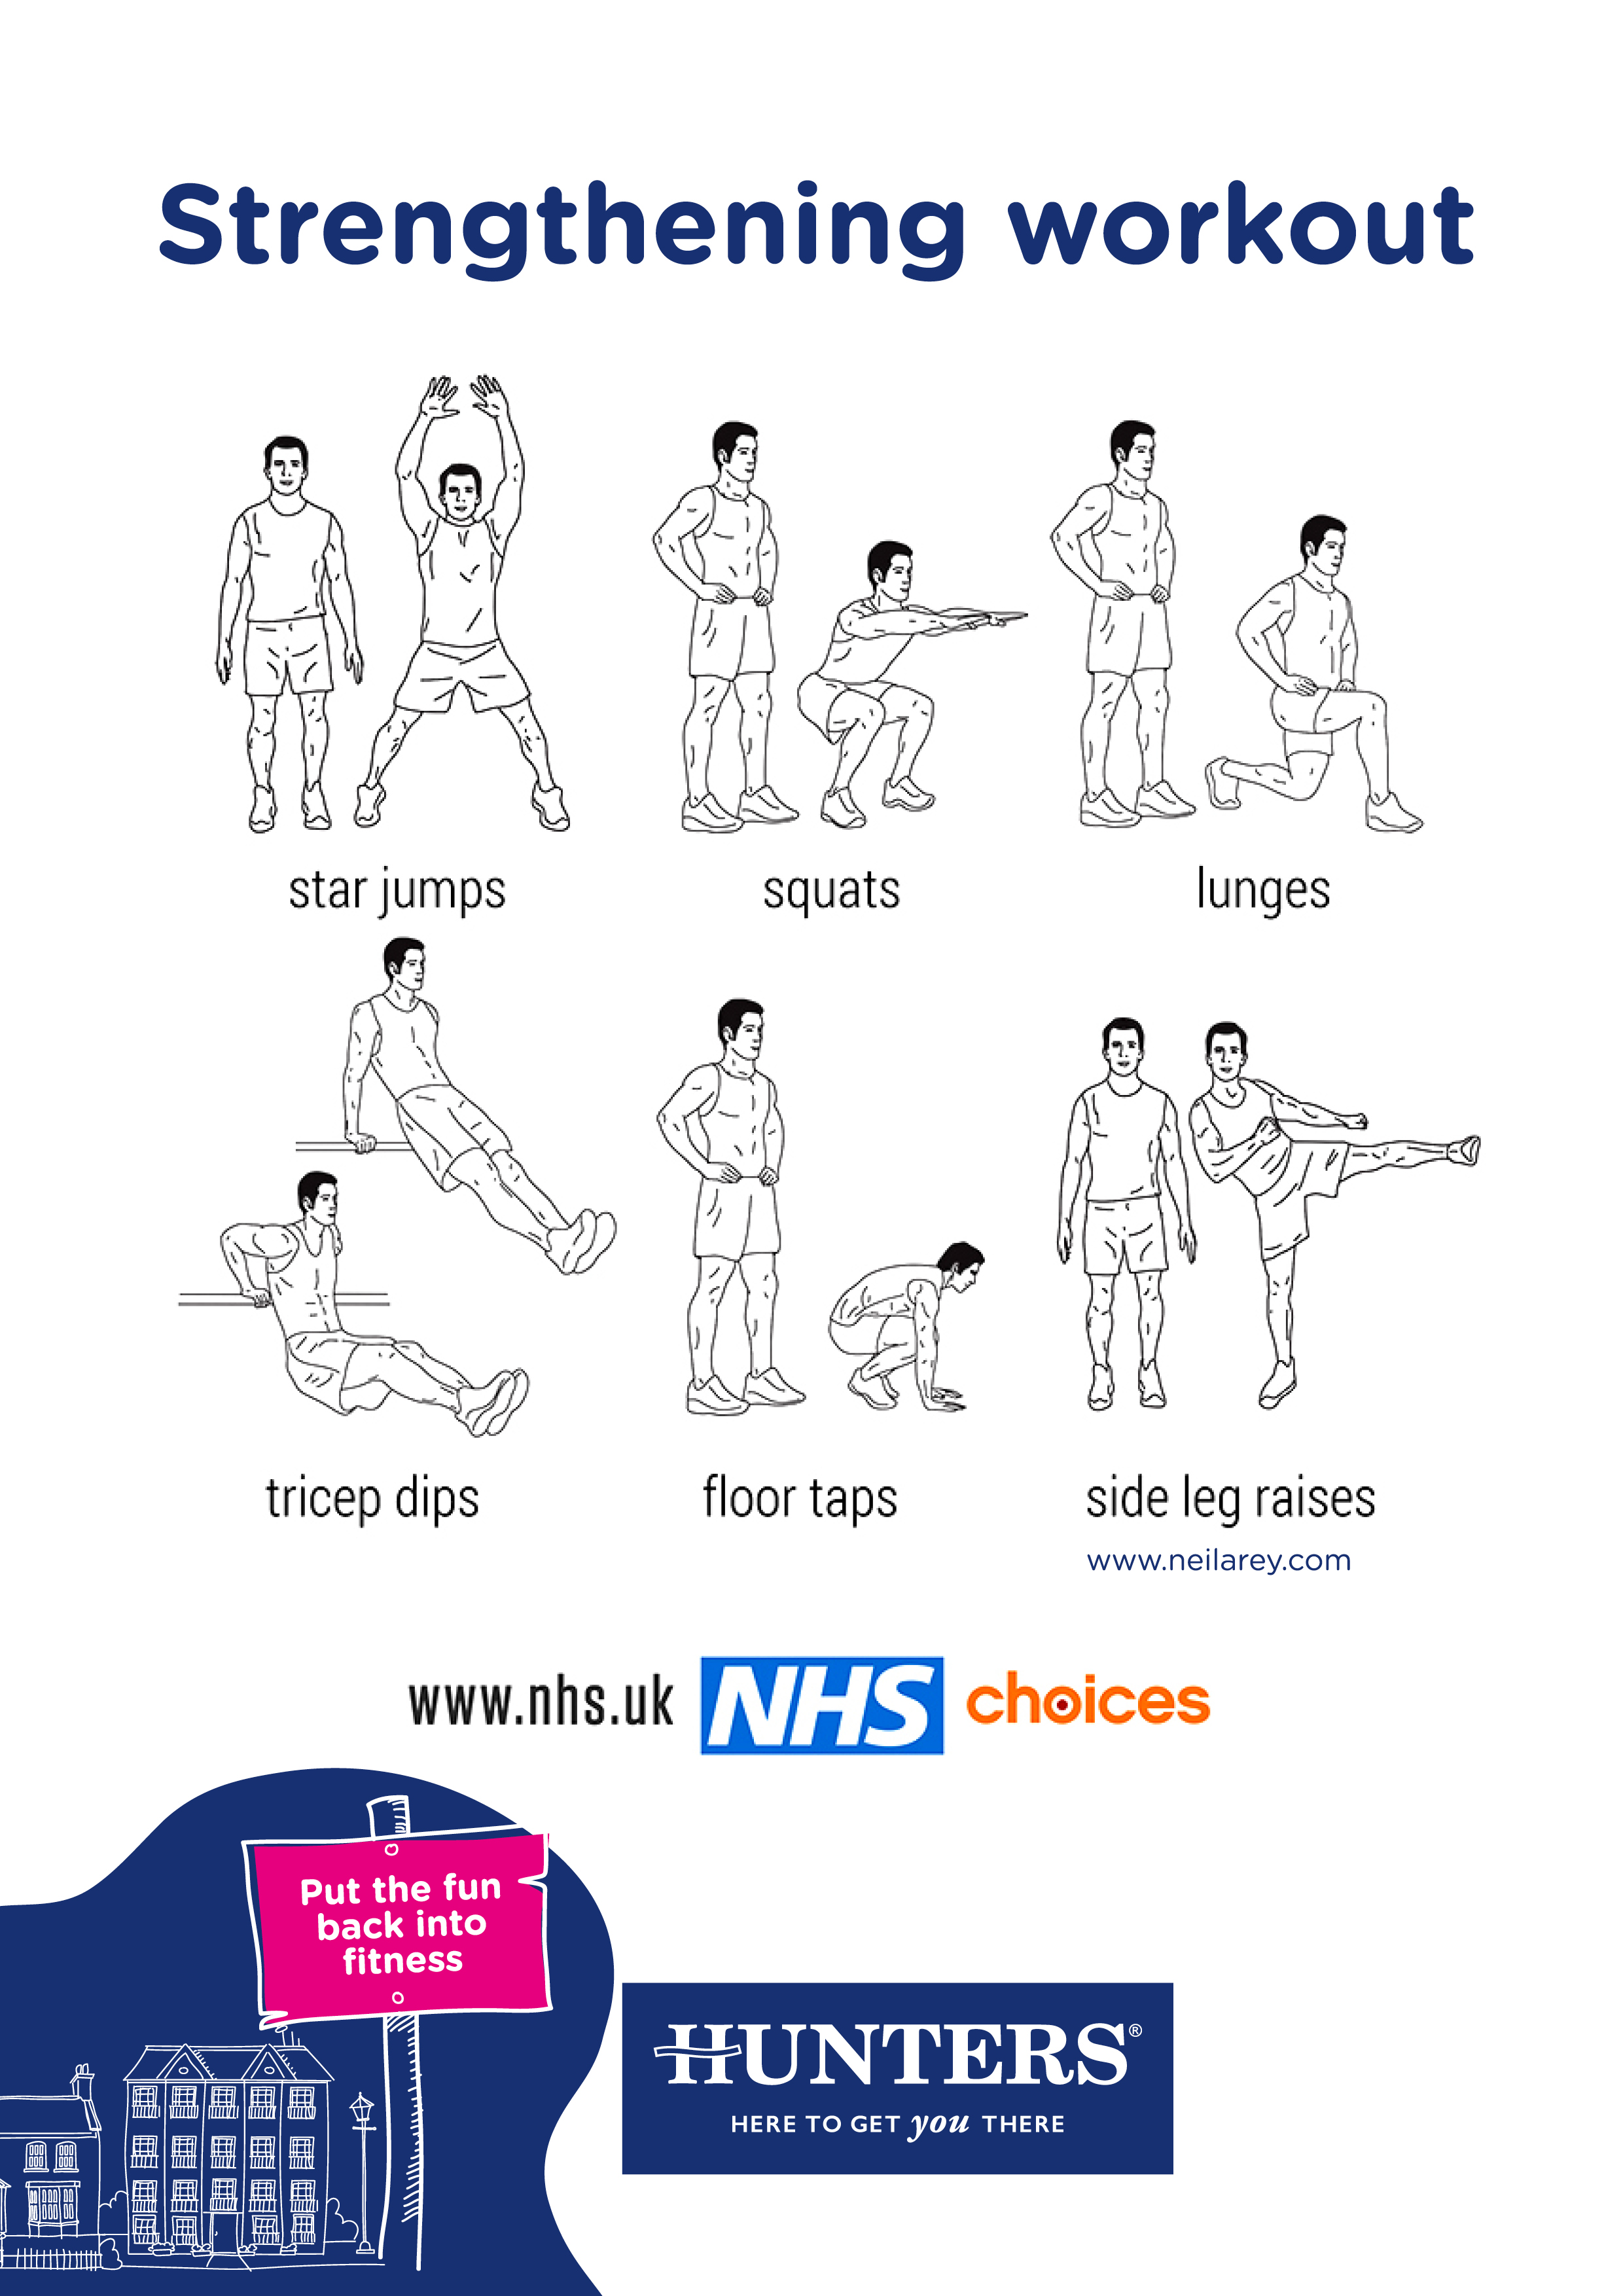 Hunters Activity Zone - Strengthening workout